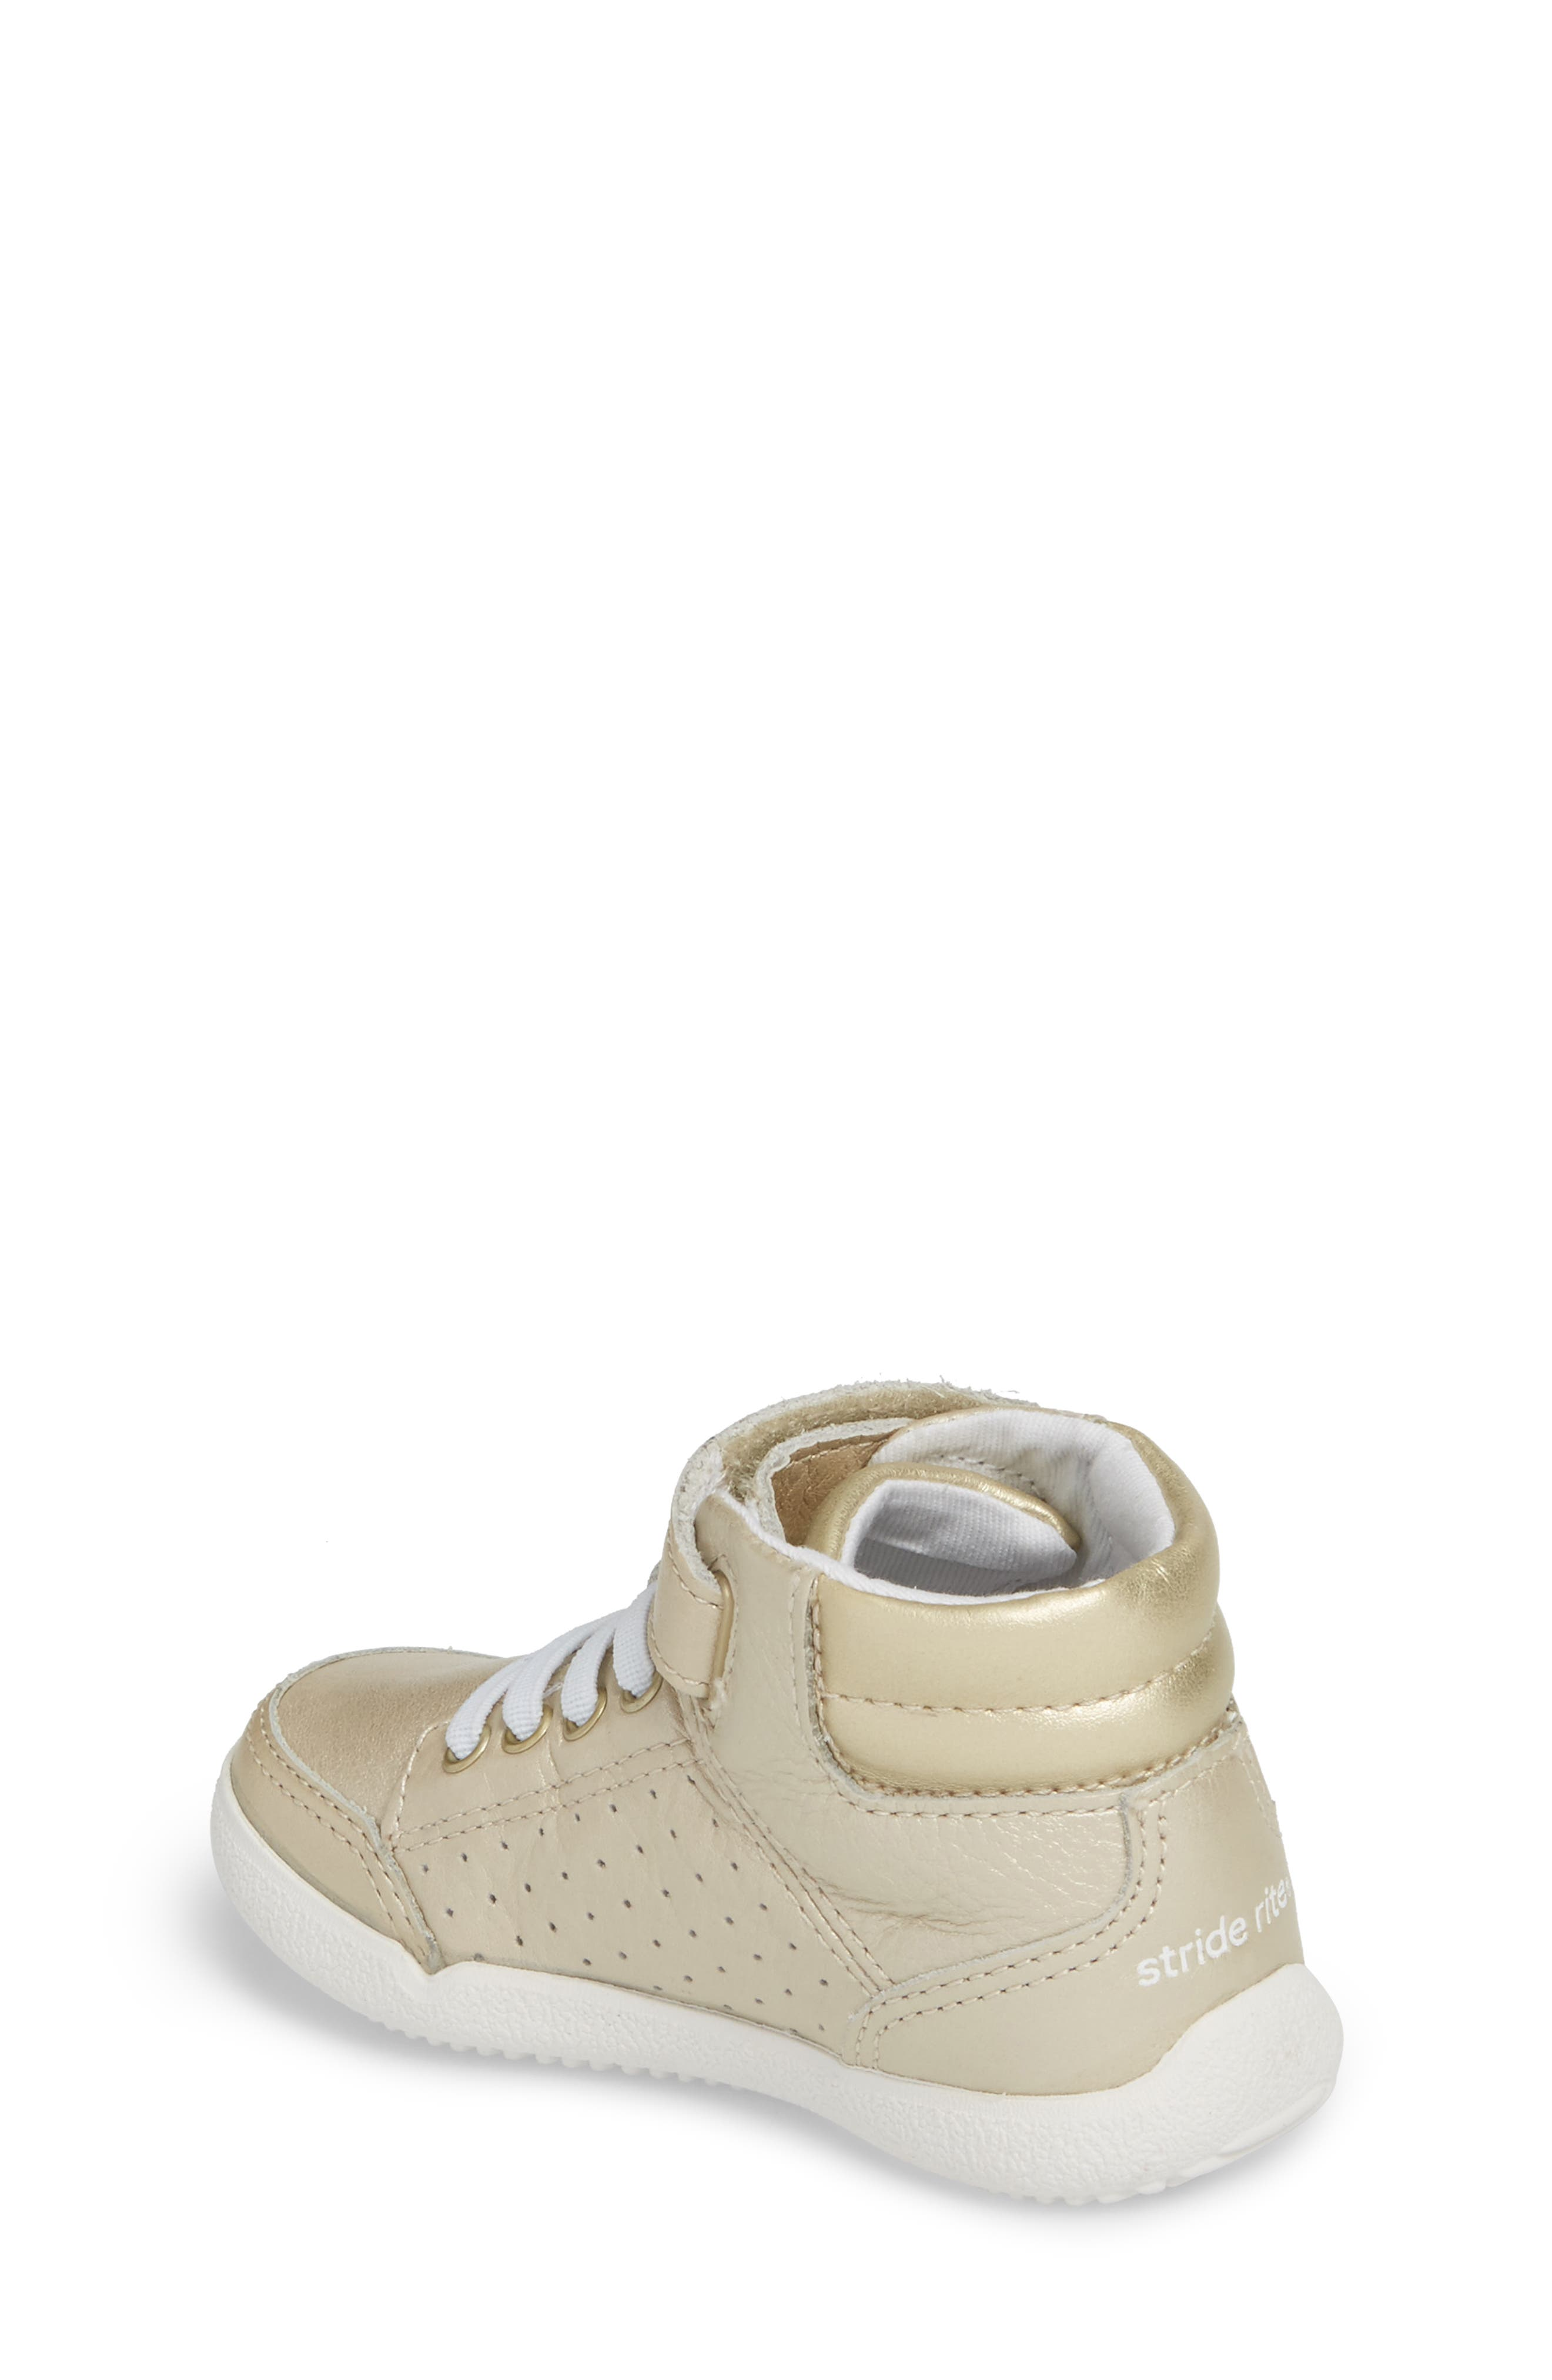 Stone High Top Sneaker,                             Alternate thumbnail 2, color,                             Champagne Leather